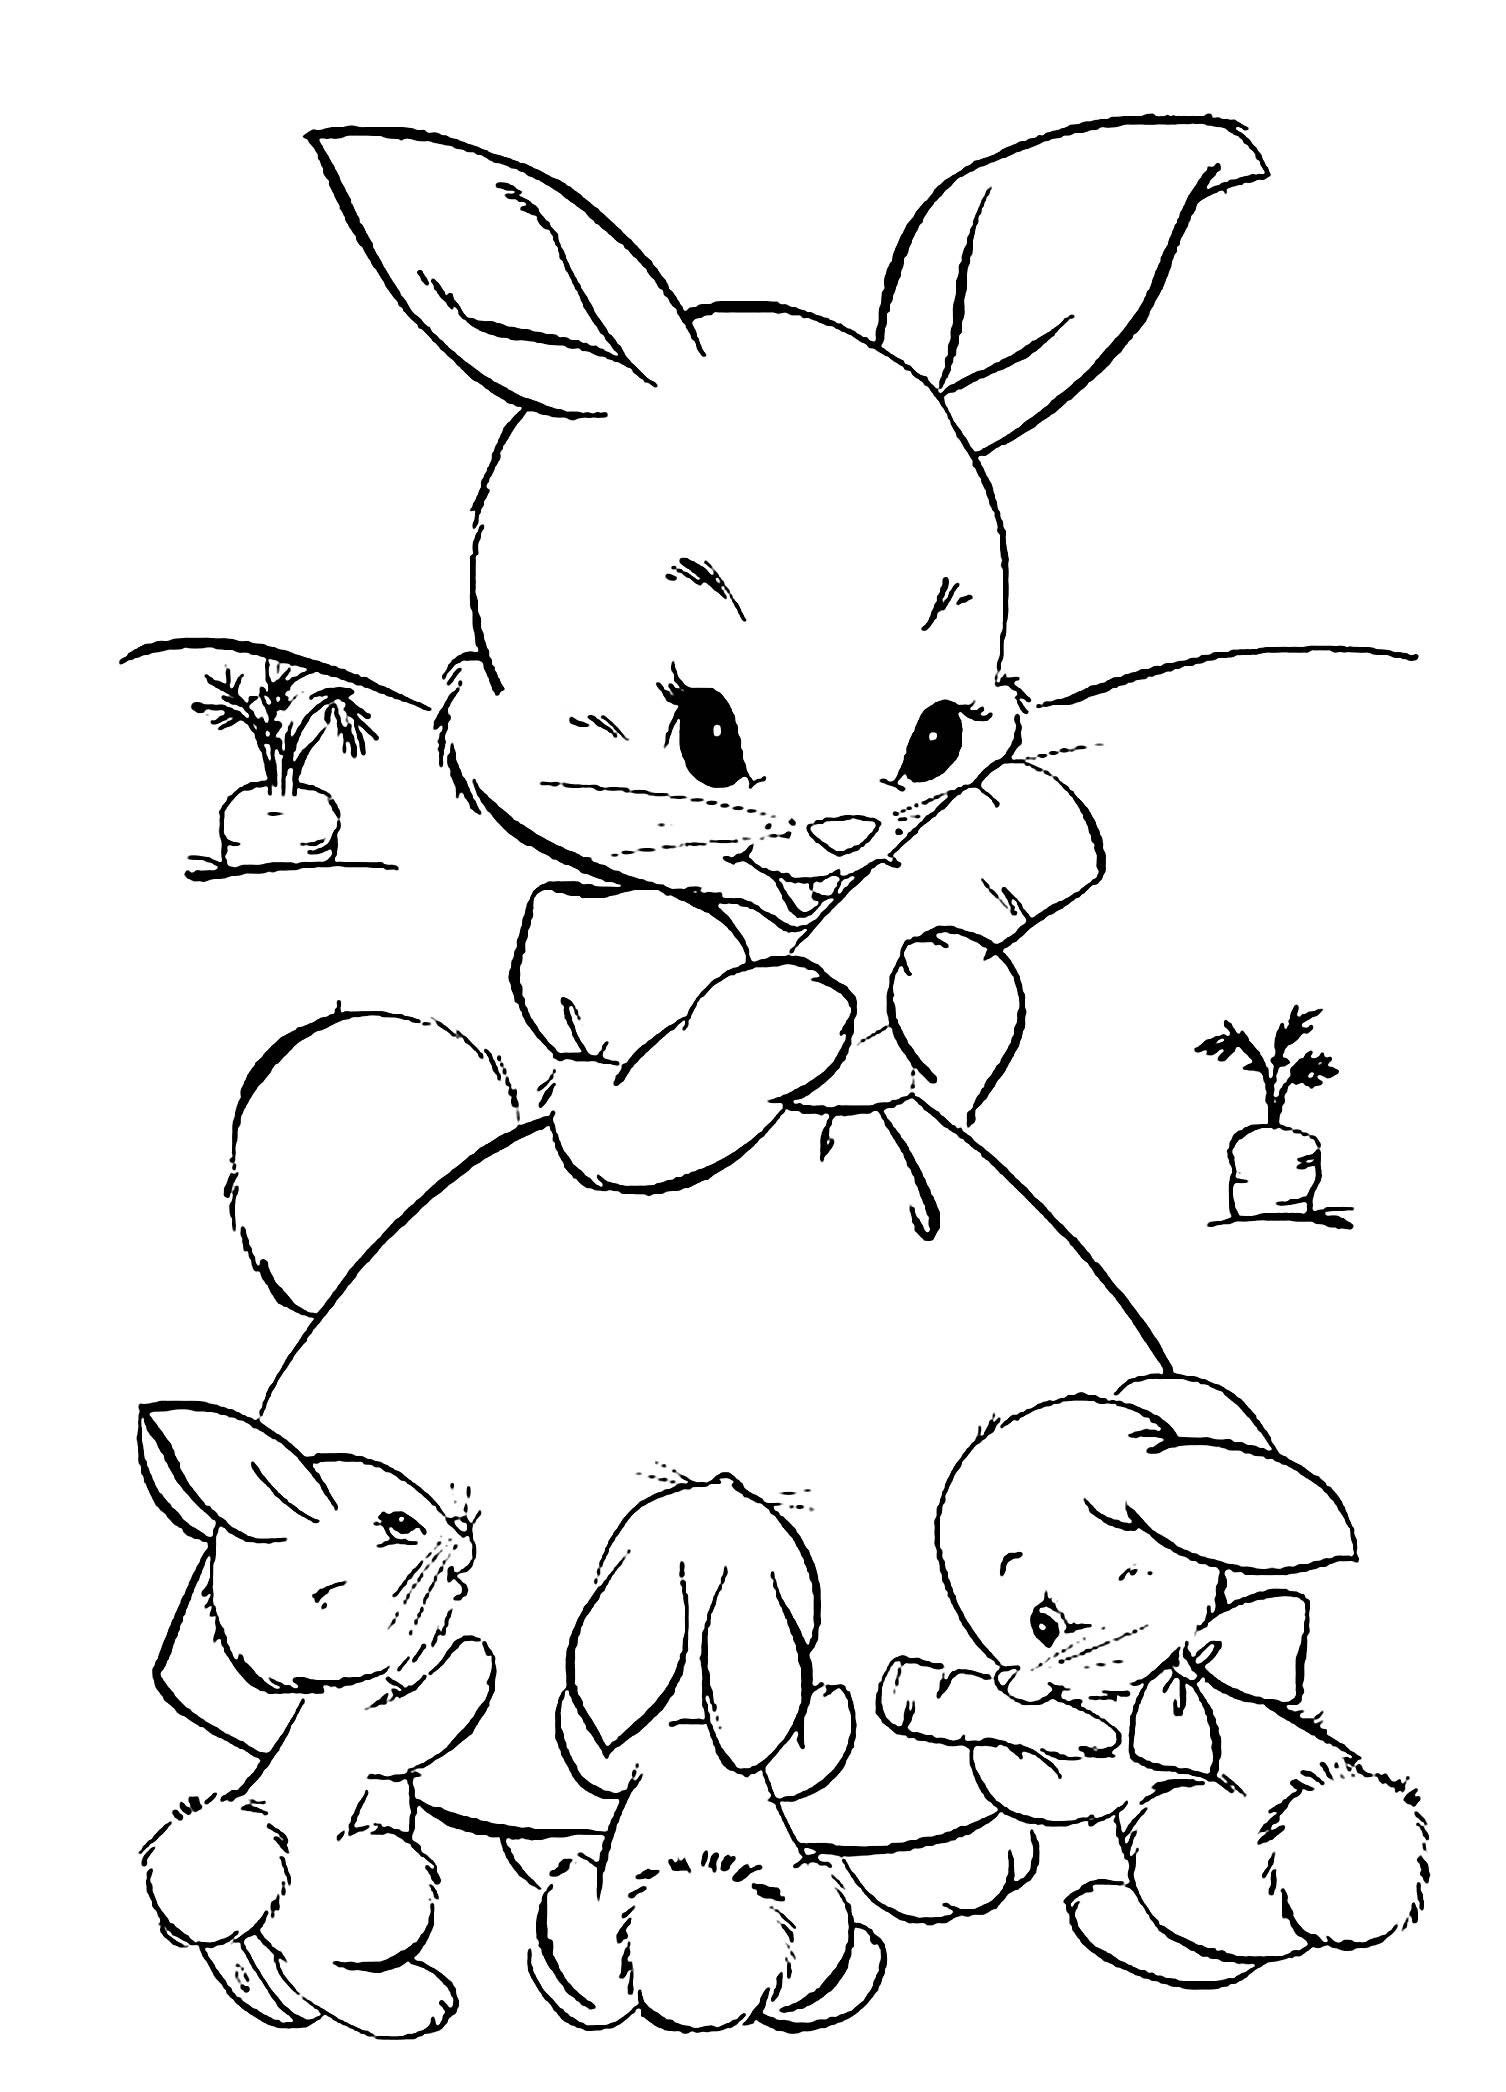 Bunny Coloring Pages For Kids Coloring Pages Rabbit Free To Color For Kids Coloring In 2020 Easter Bunny Colouring Bunny Coloring Pages Cute Coloring Pages